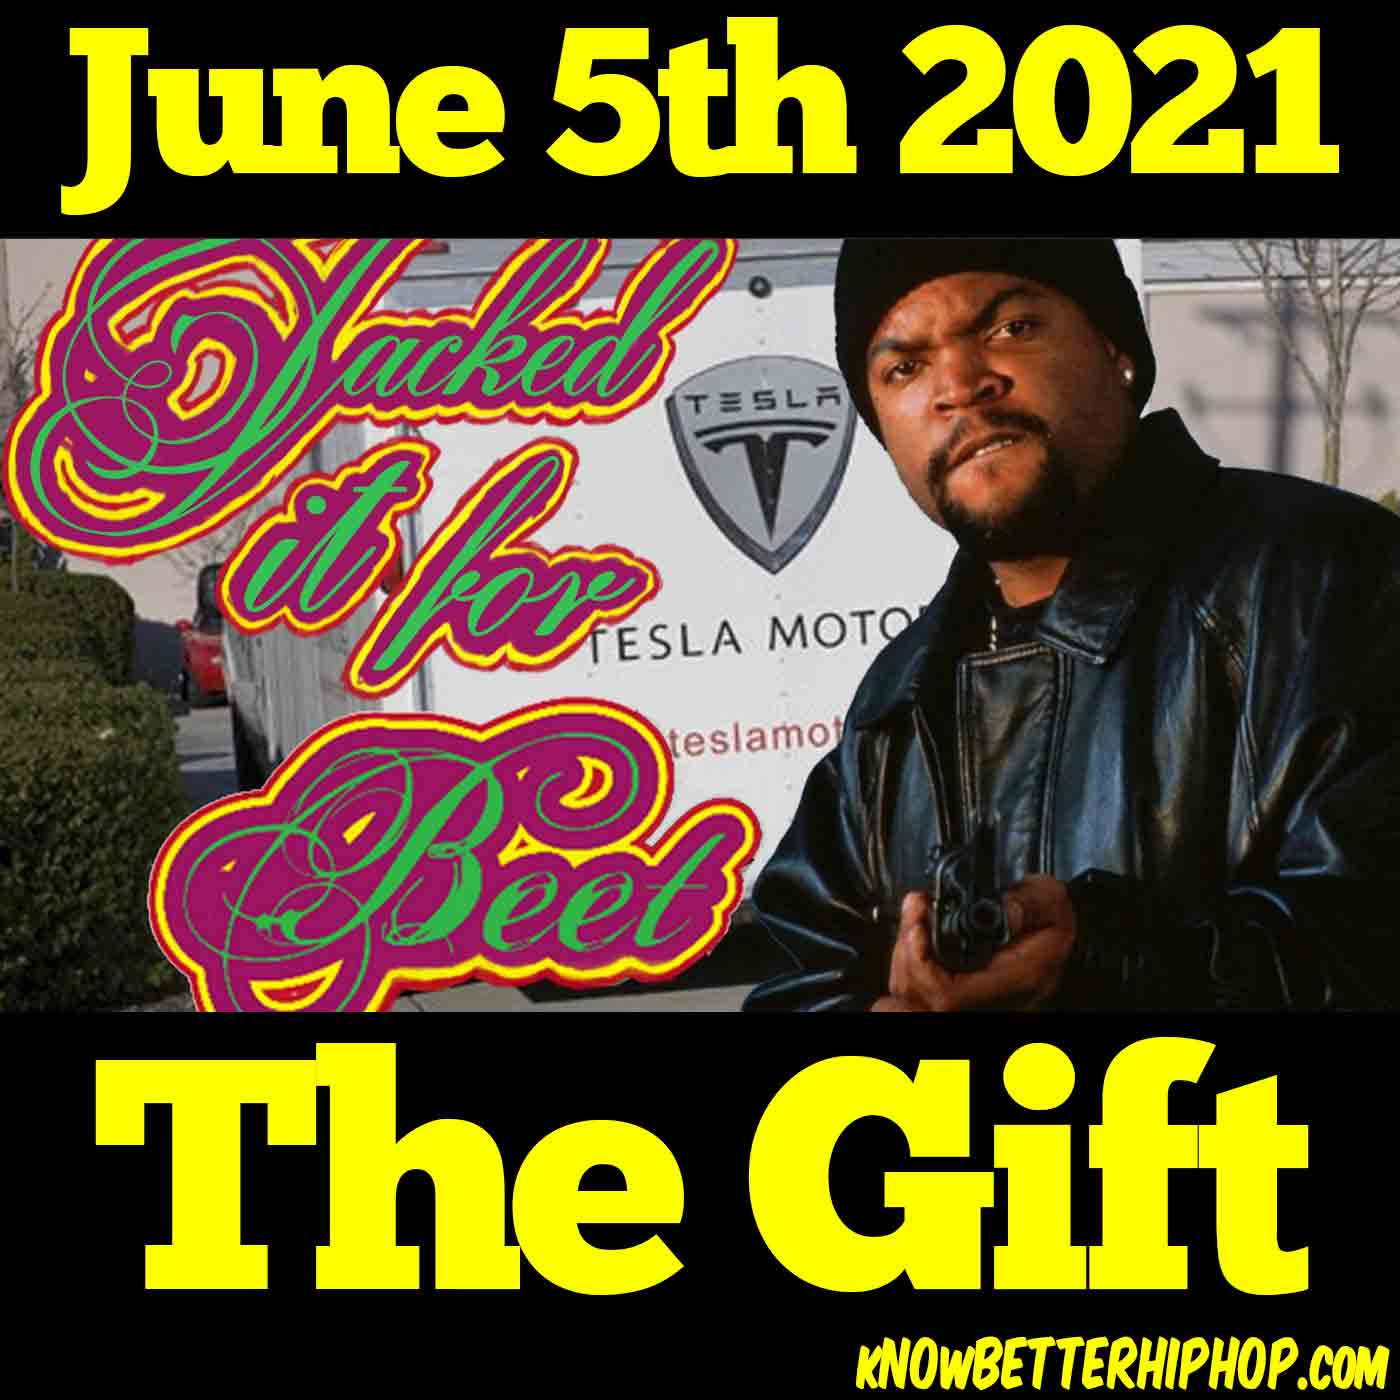 6-5-21 OUR show The Gift